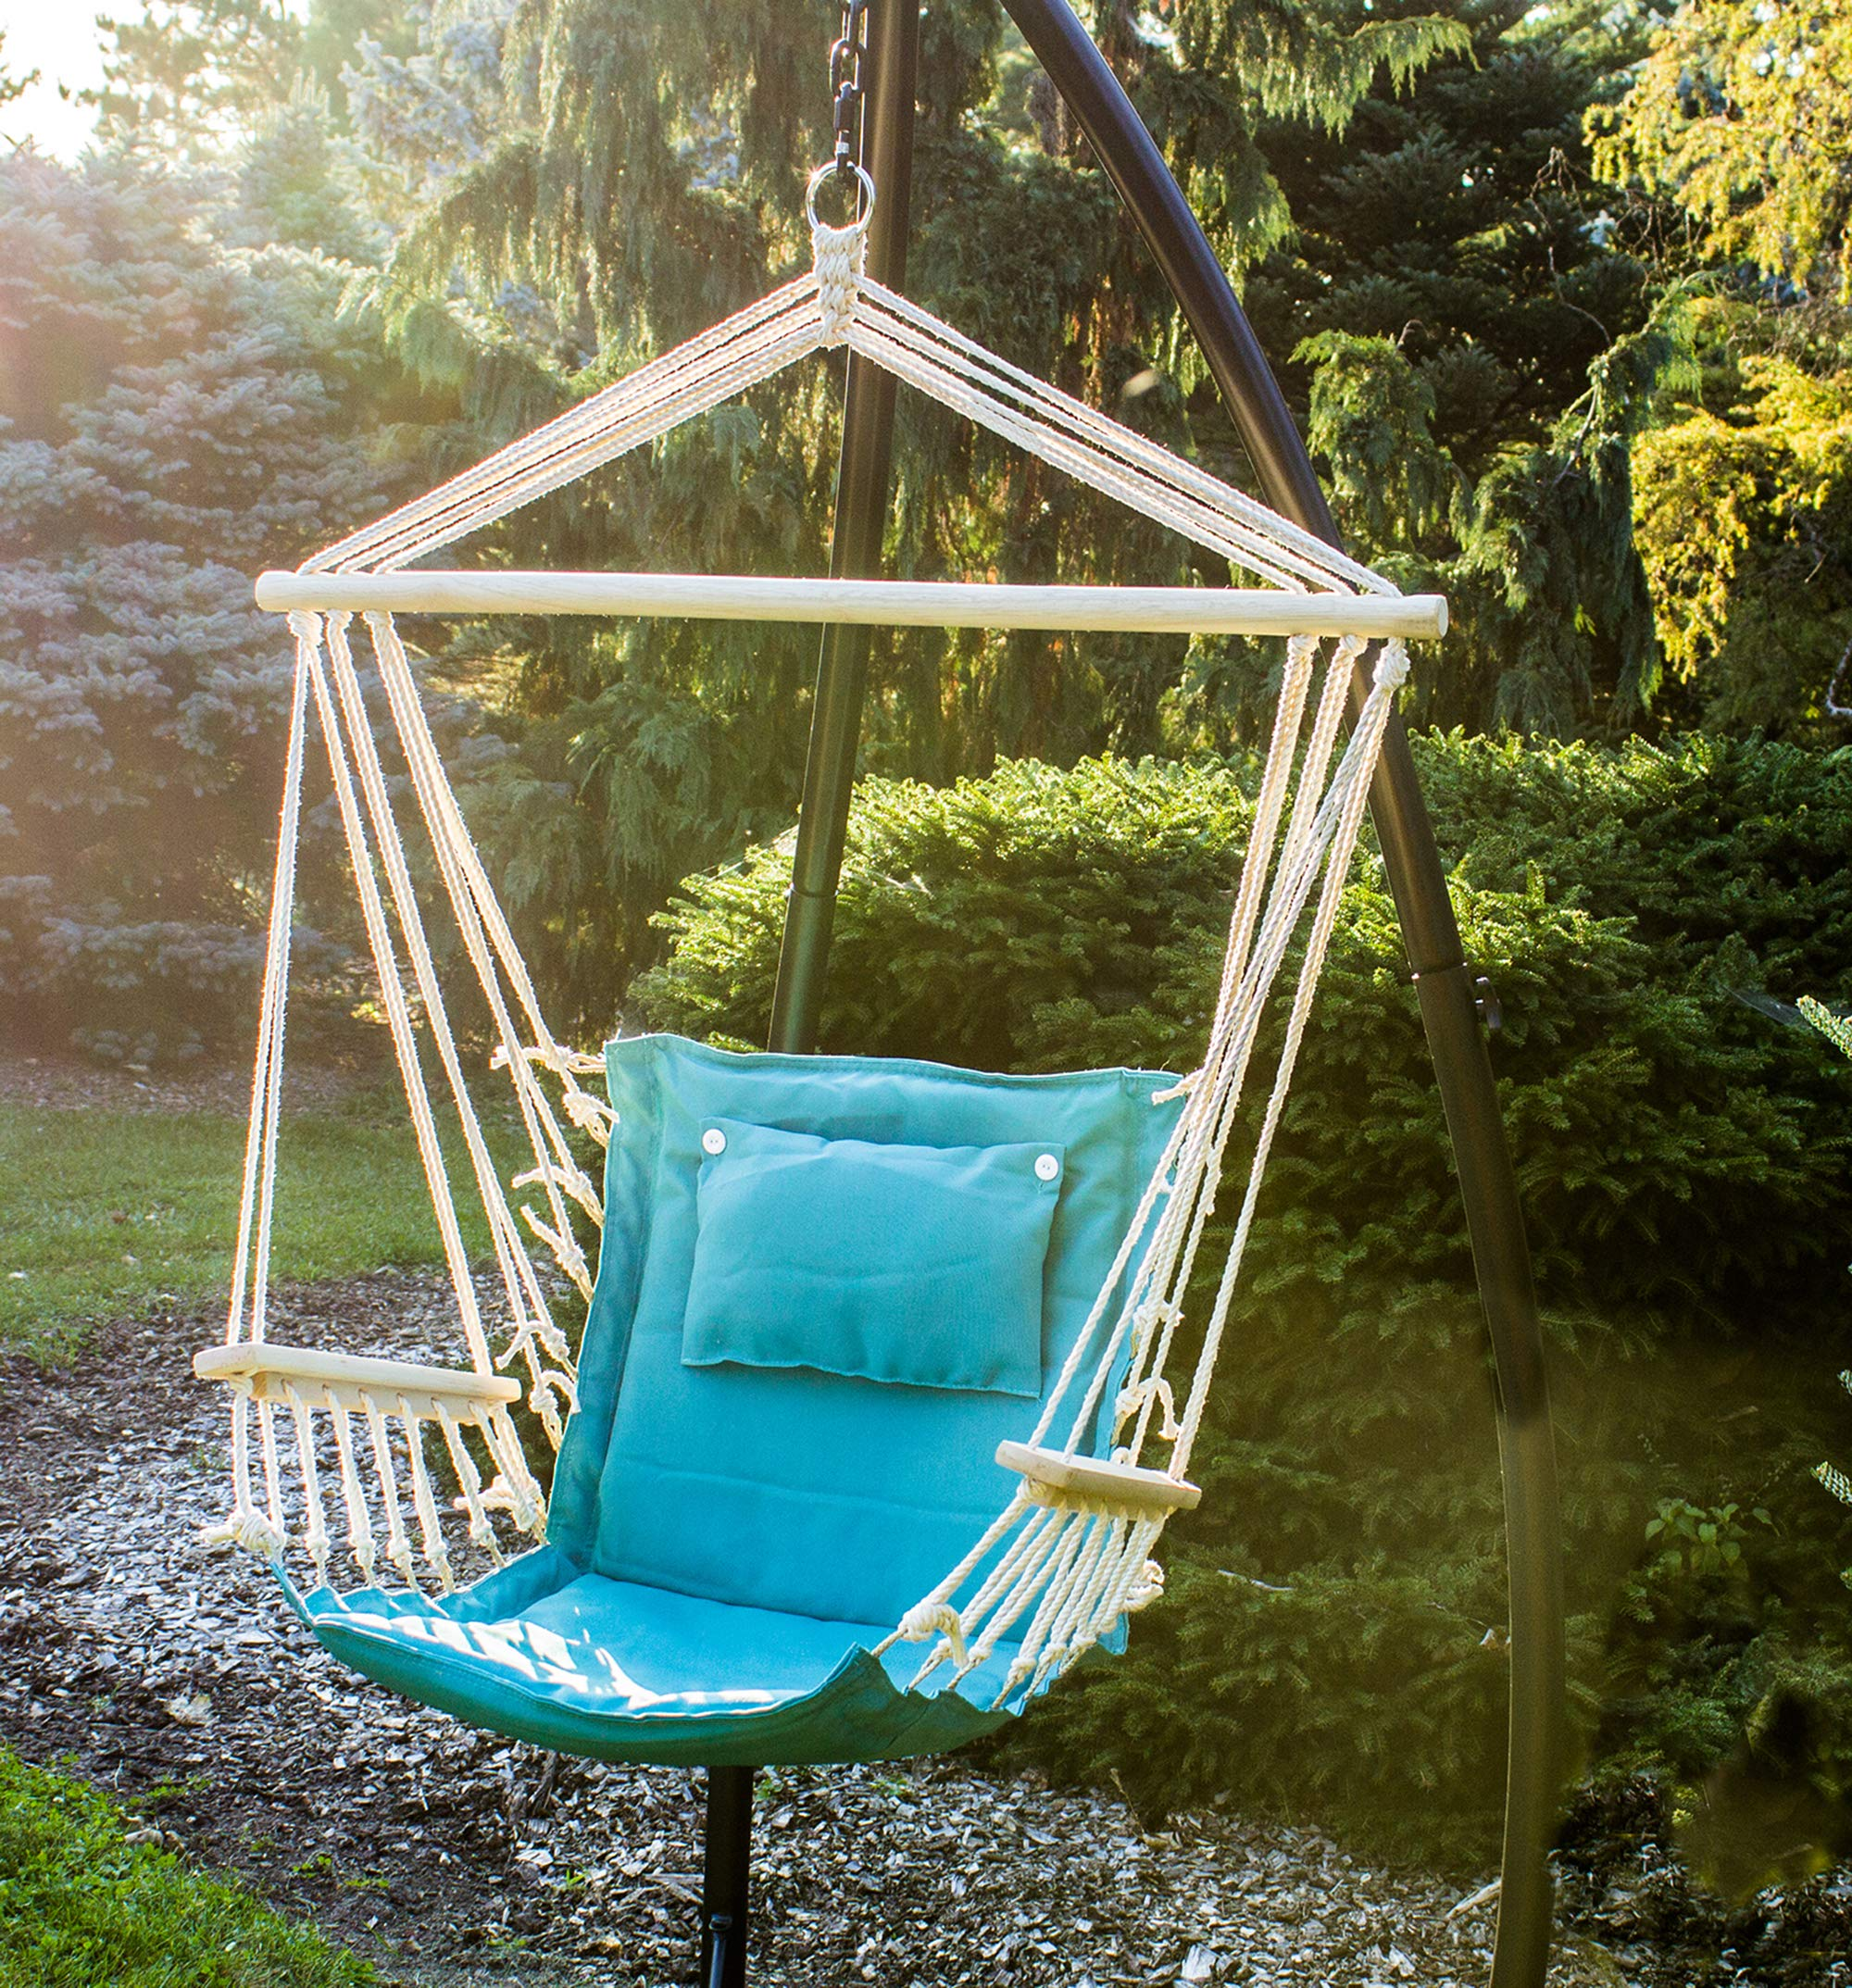 BACKYARD EXPRESSIONS PATIO · HOME · GARDEN 914974 Backyard Expressions Hammock Chair and Stand, Aqua by BACKYARD EXPRESSIONS PATIO · HOME · GARDEN